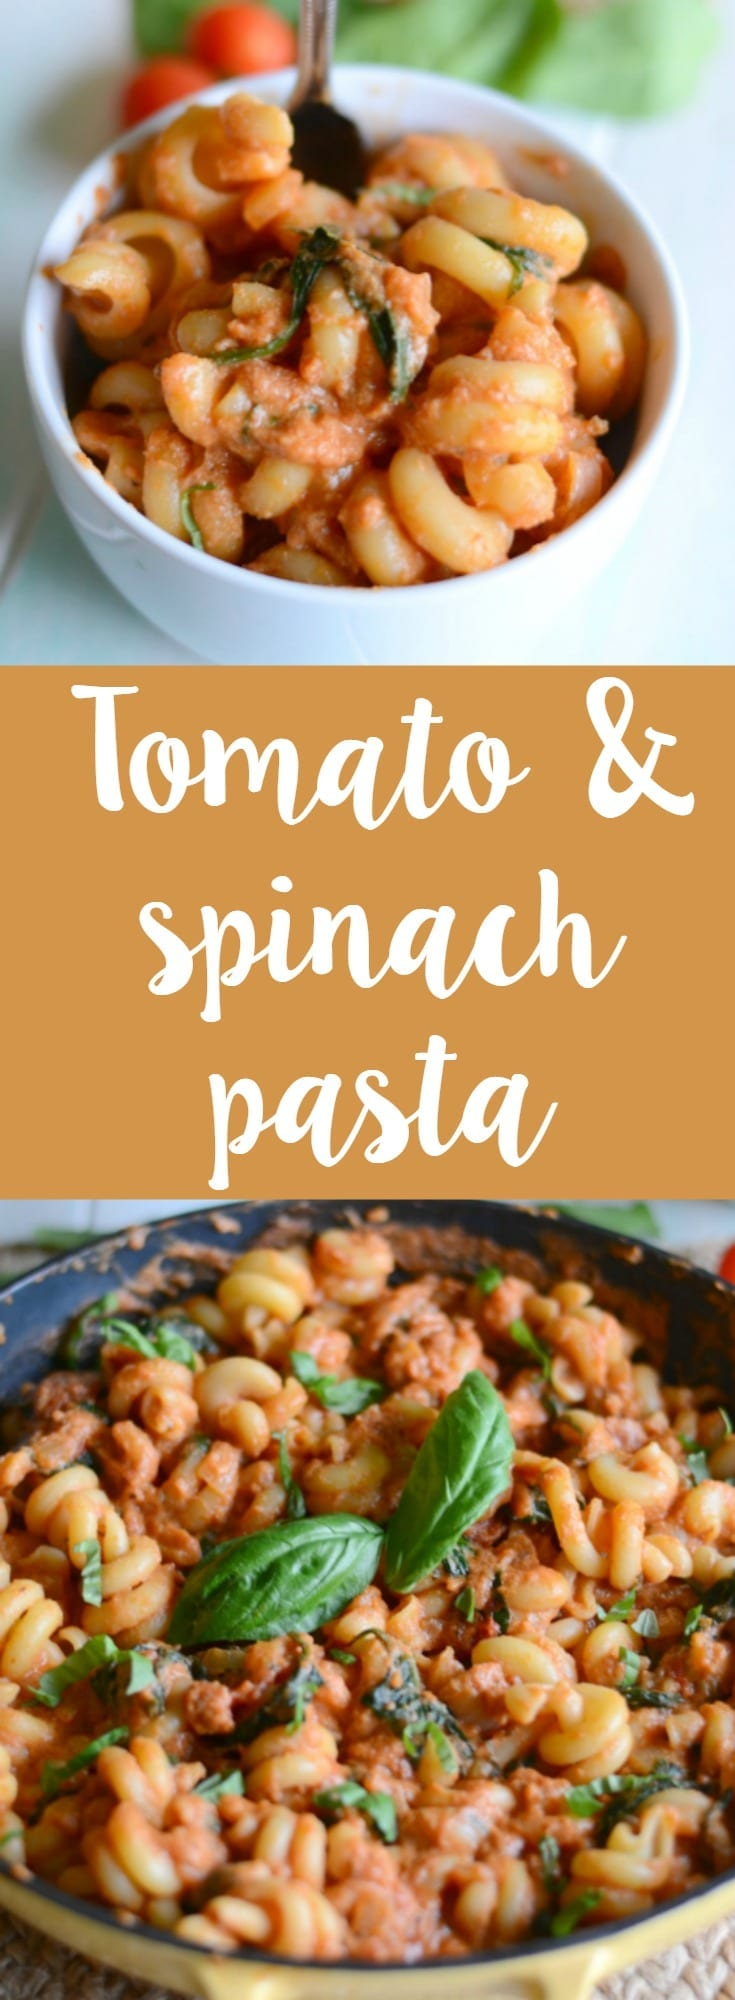 Creamy tomato and spinach pasta recipe! This yummy pasta comes together in under 30 minutes and is the perfect family dinner recipe!